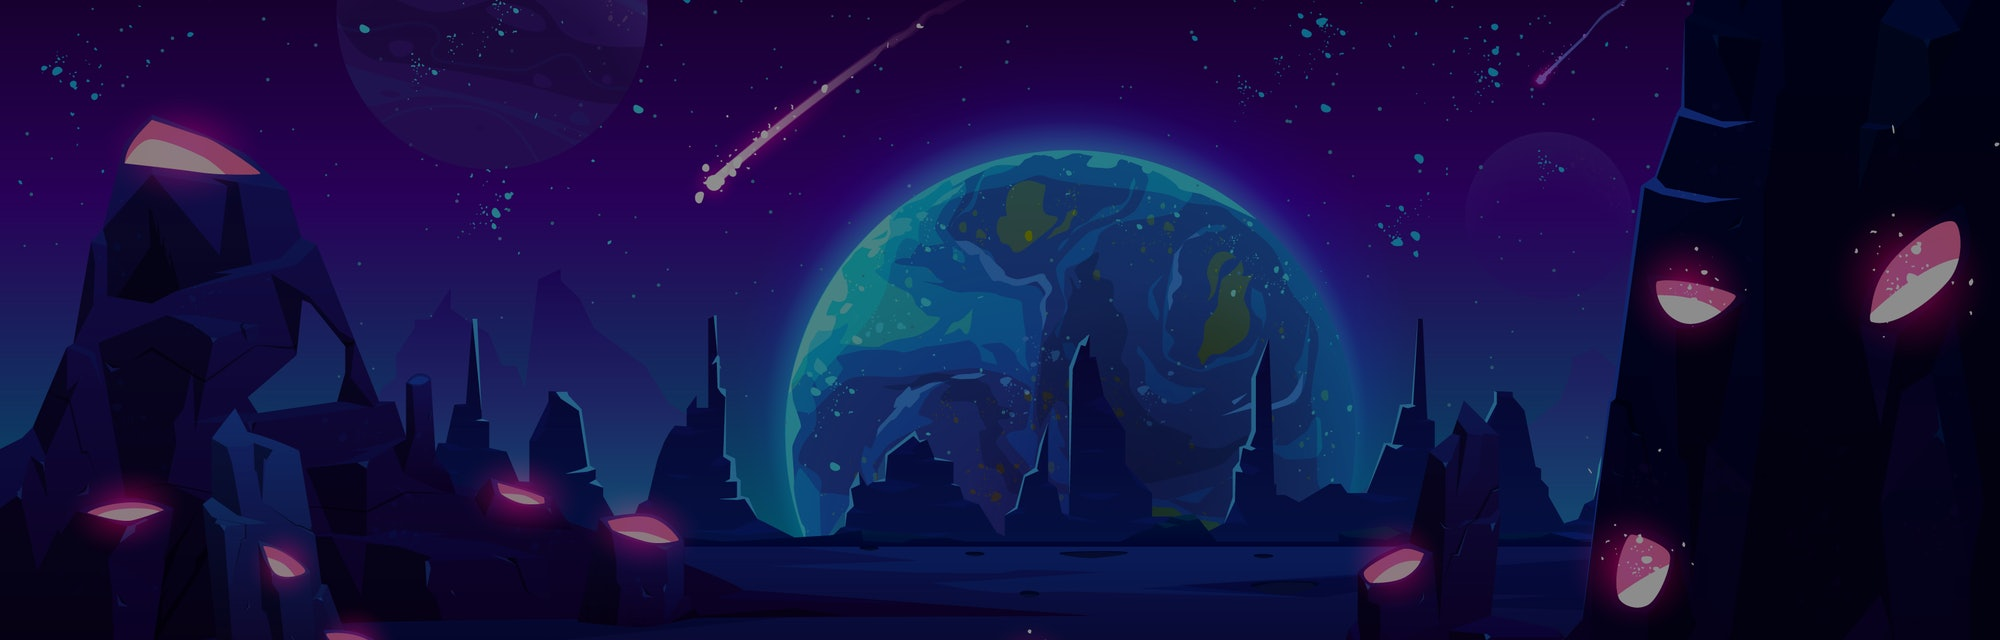 Earth view at night from alien planet, neon space background with falling meteor in dark starry sky,...